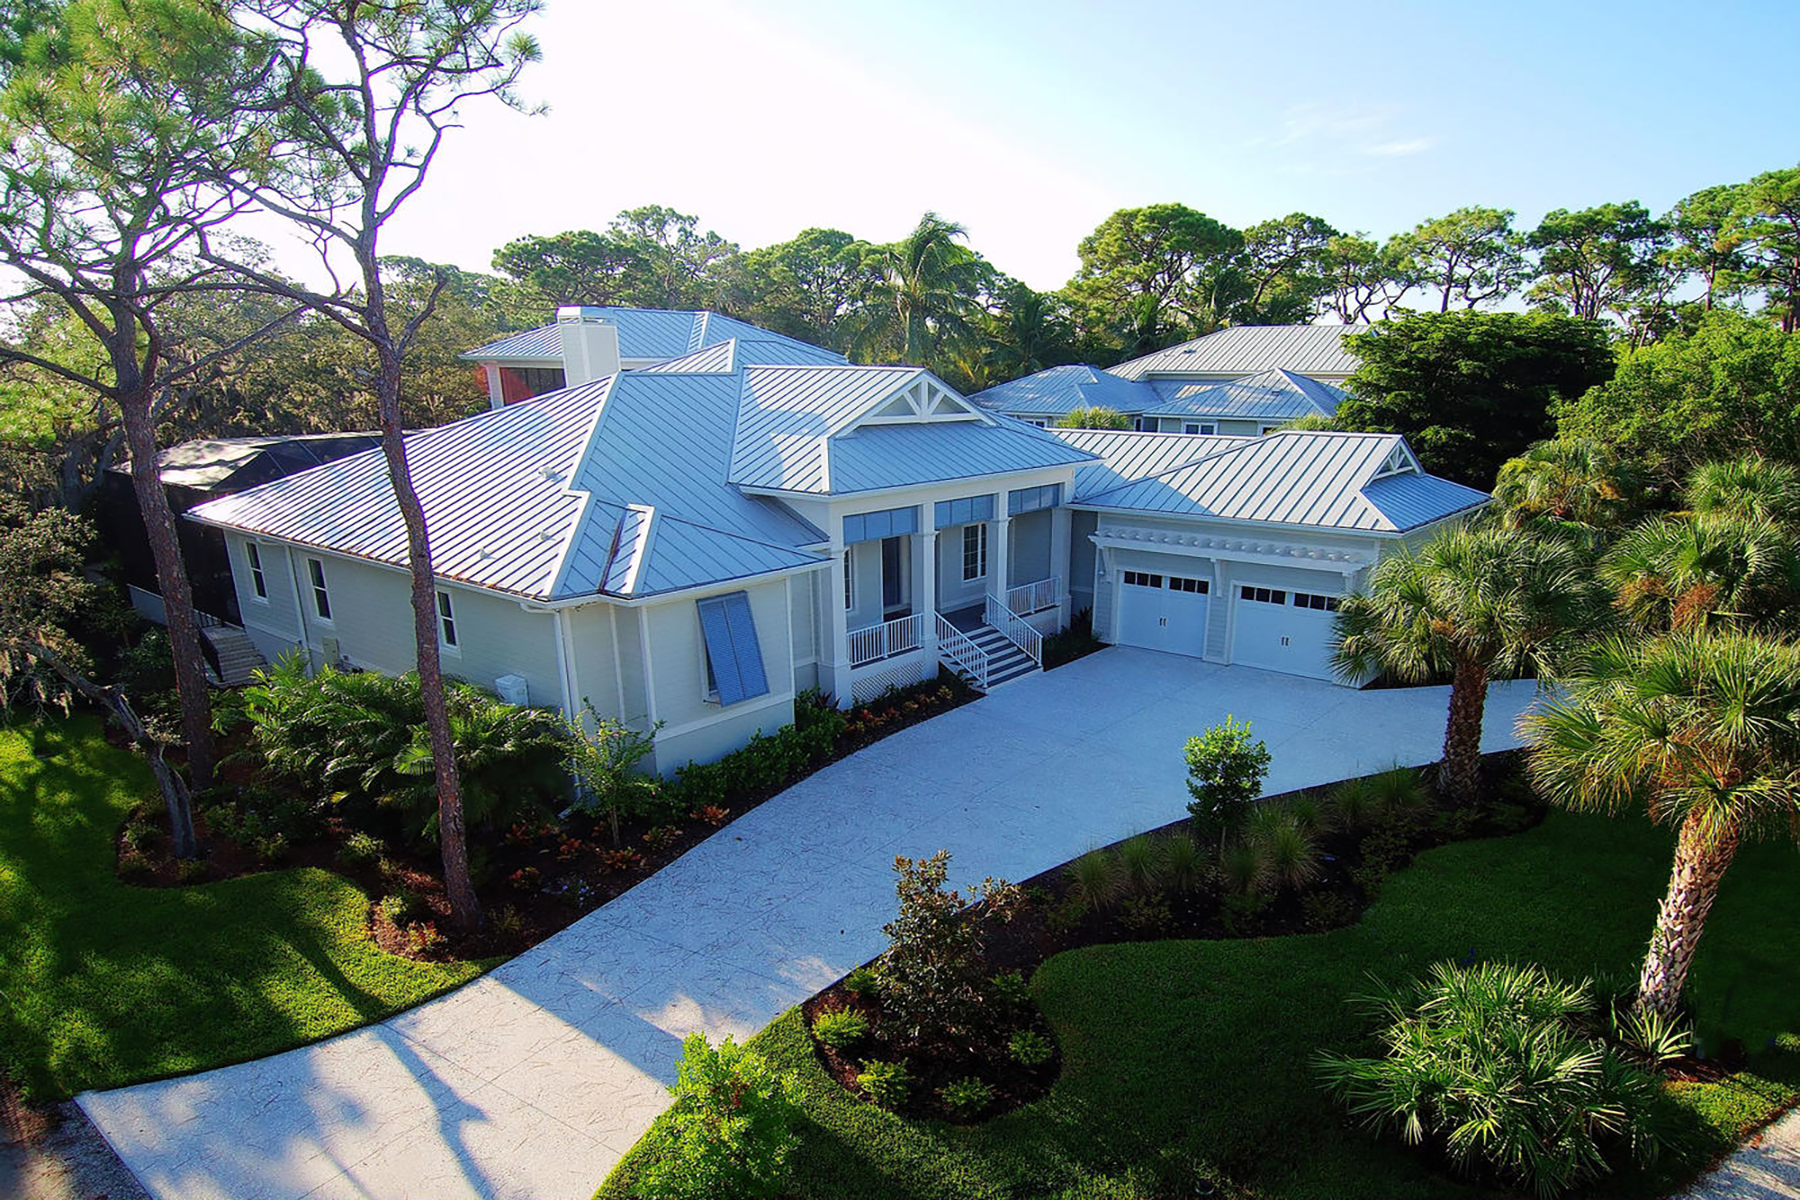 Single Family Homes for Sale at EAGLE POINT CLUB 722 Eagle Point Dr Venice, Florida 34285 United States